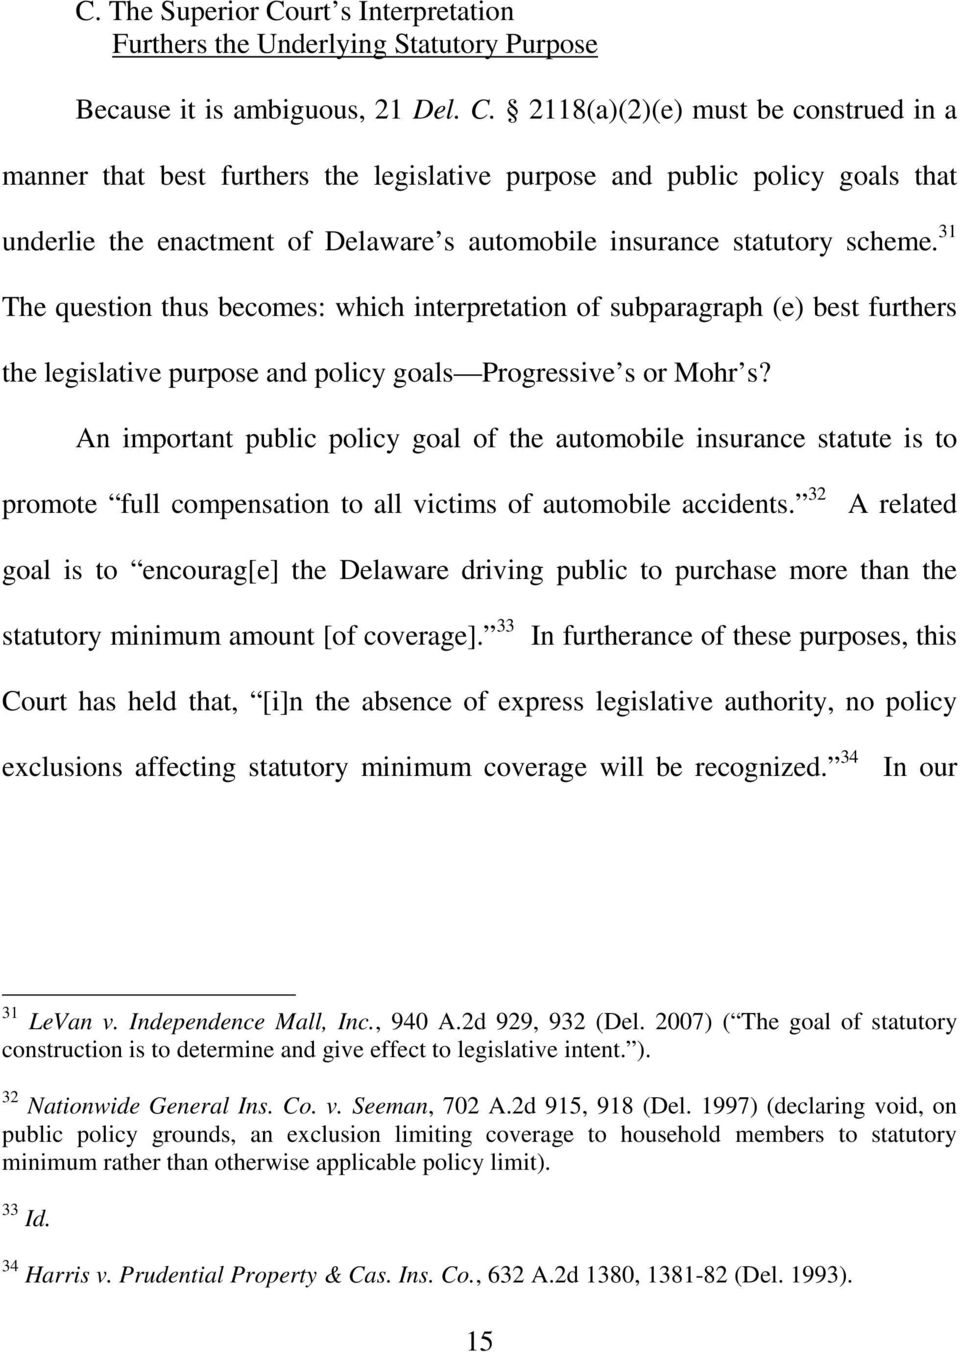 2118(a)(2)(e) must be construed in a manner that best furthers the legislative purpose and public policy goals that underlie the enactment of Delaware s automobile insurance statutory scheme.